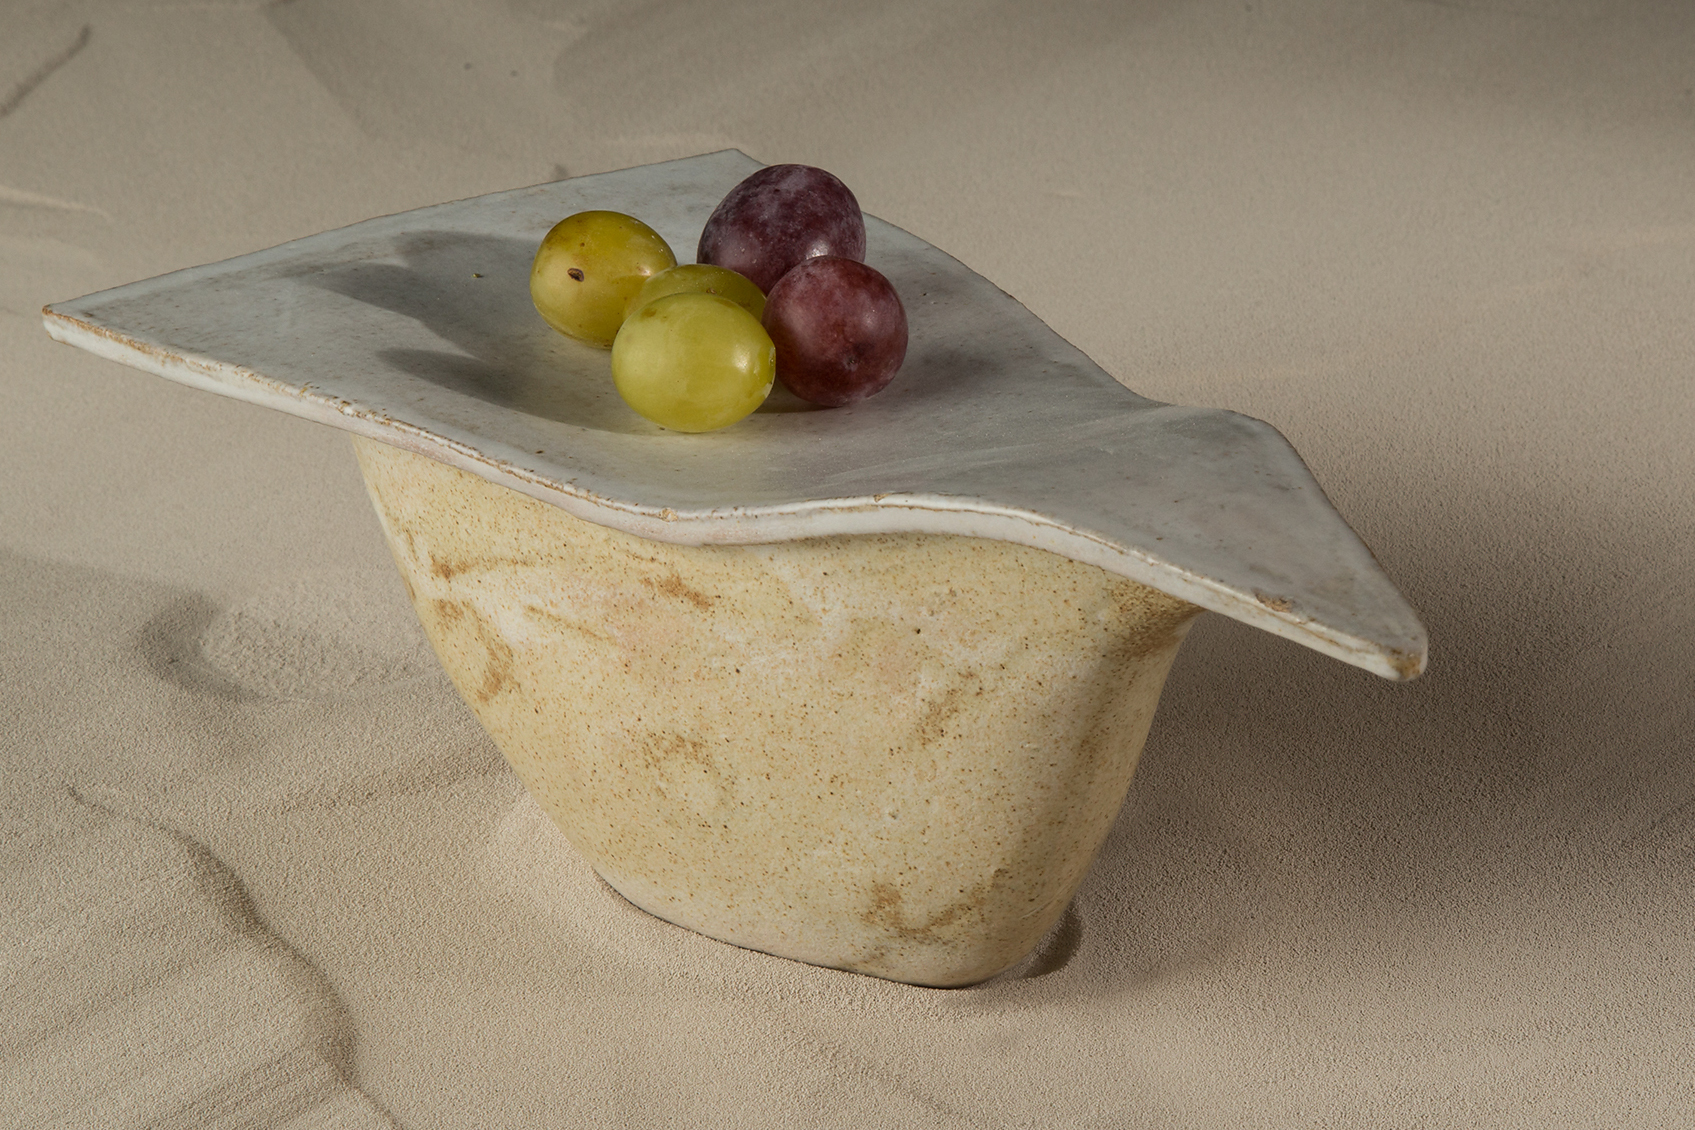 Crockery by Isabel Companys (Gastroceramic). Photo by Gastroceramic.